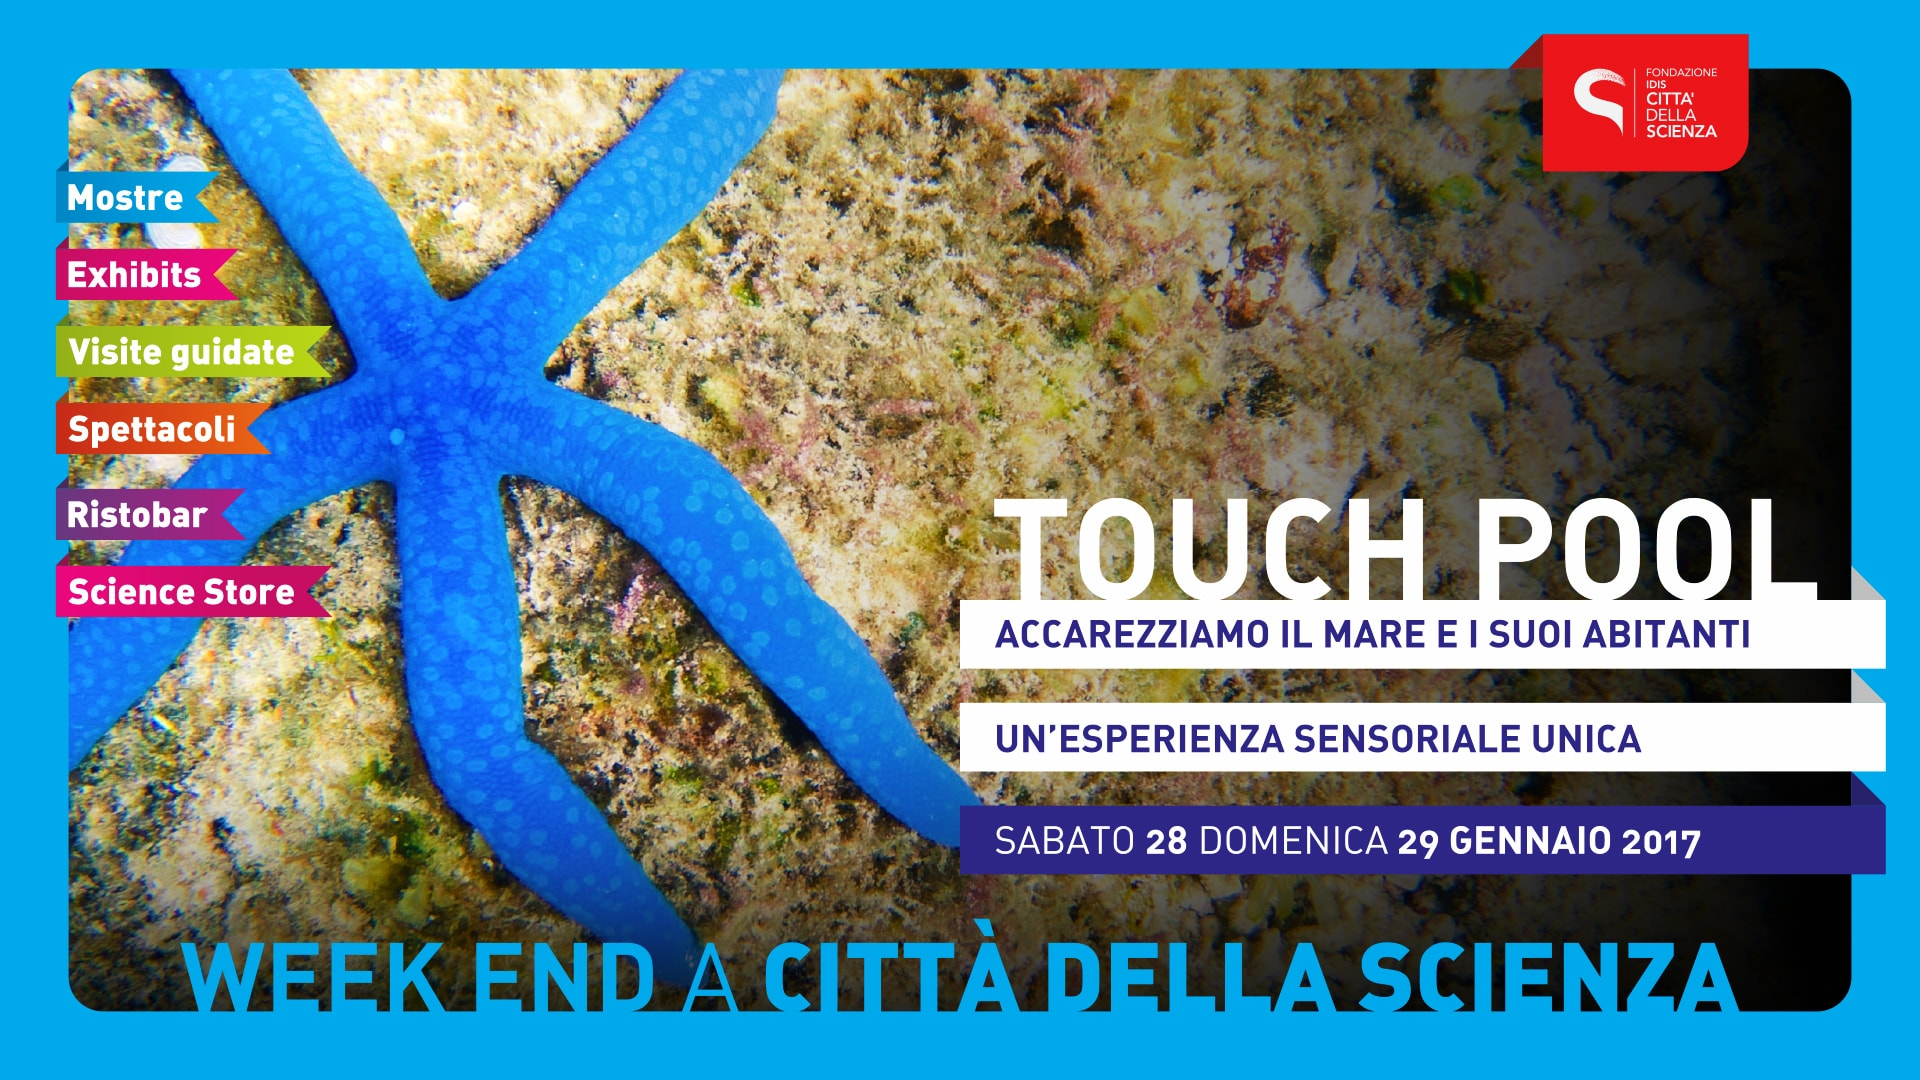 TOUCH_POOL_1920_x_1080-min